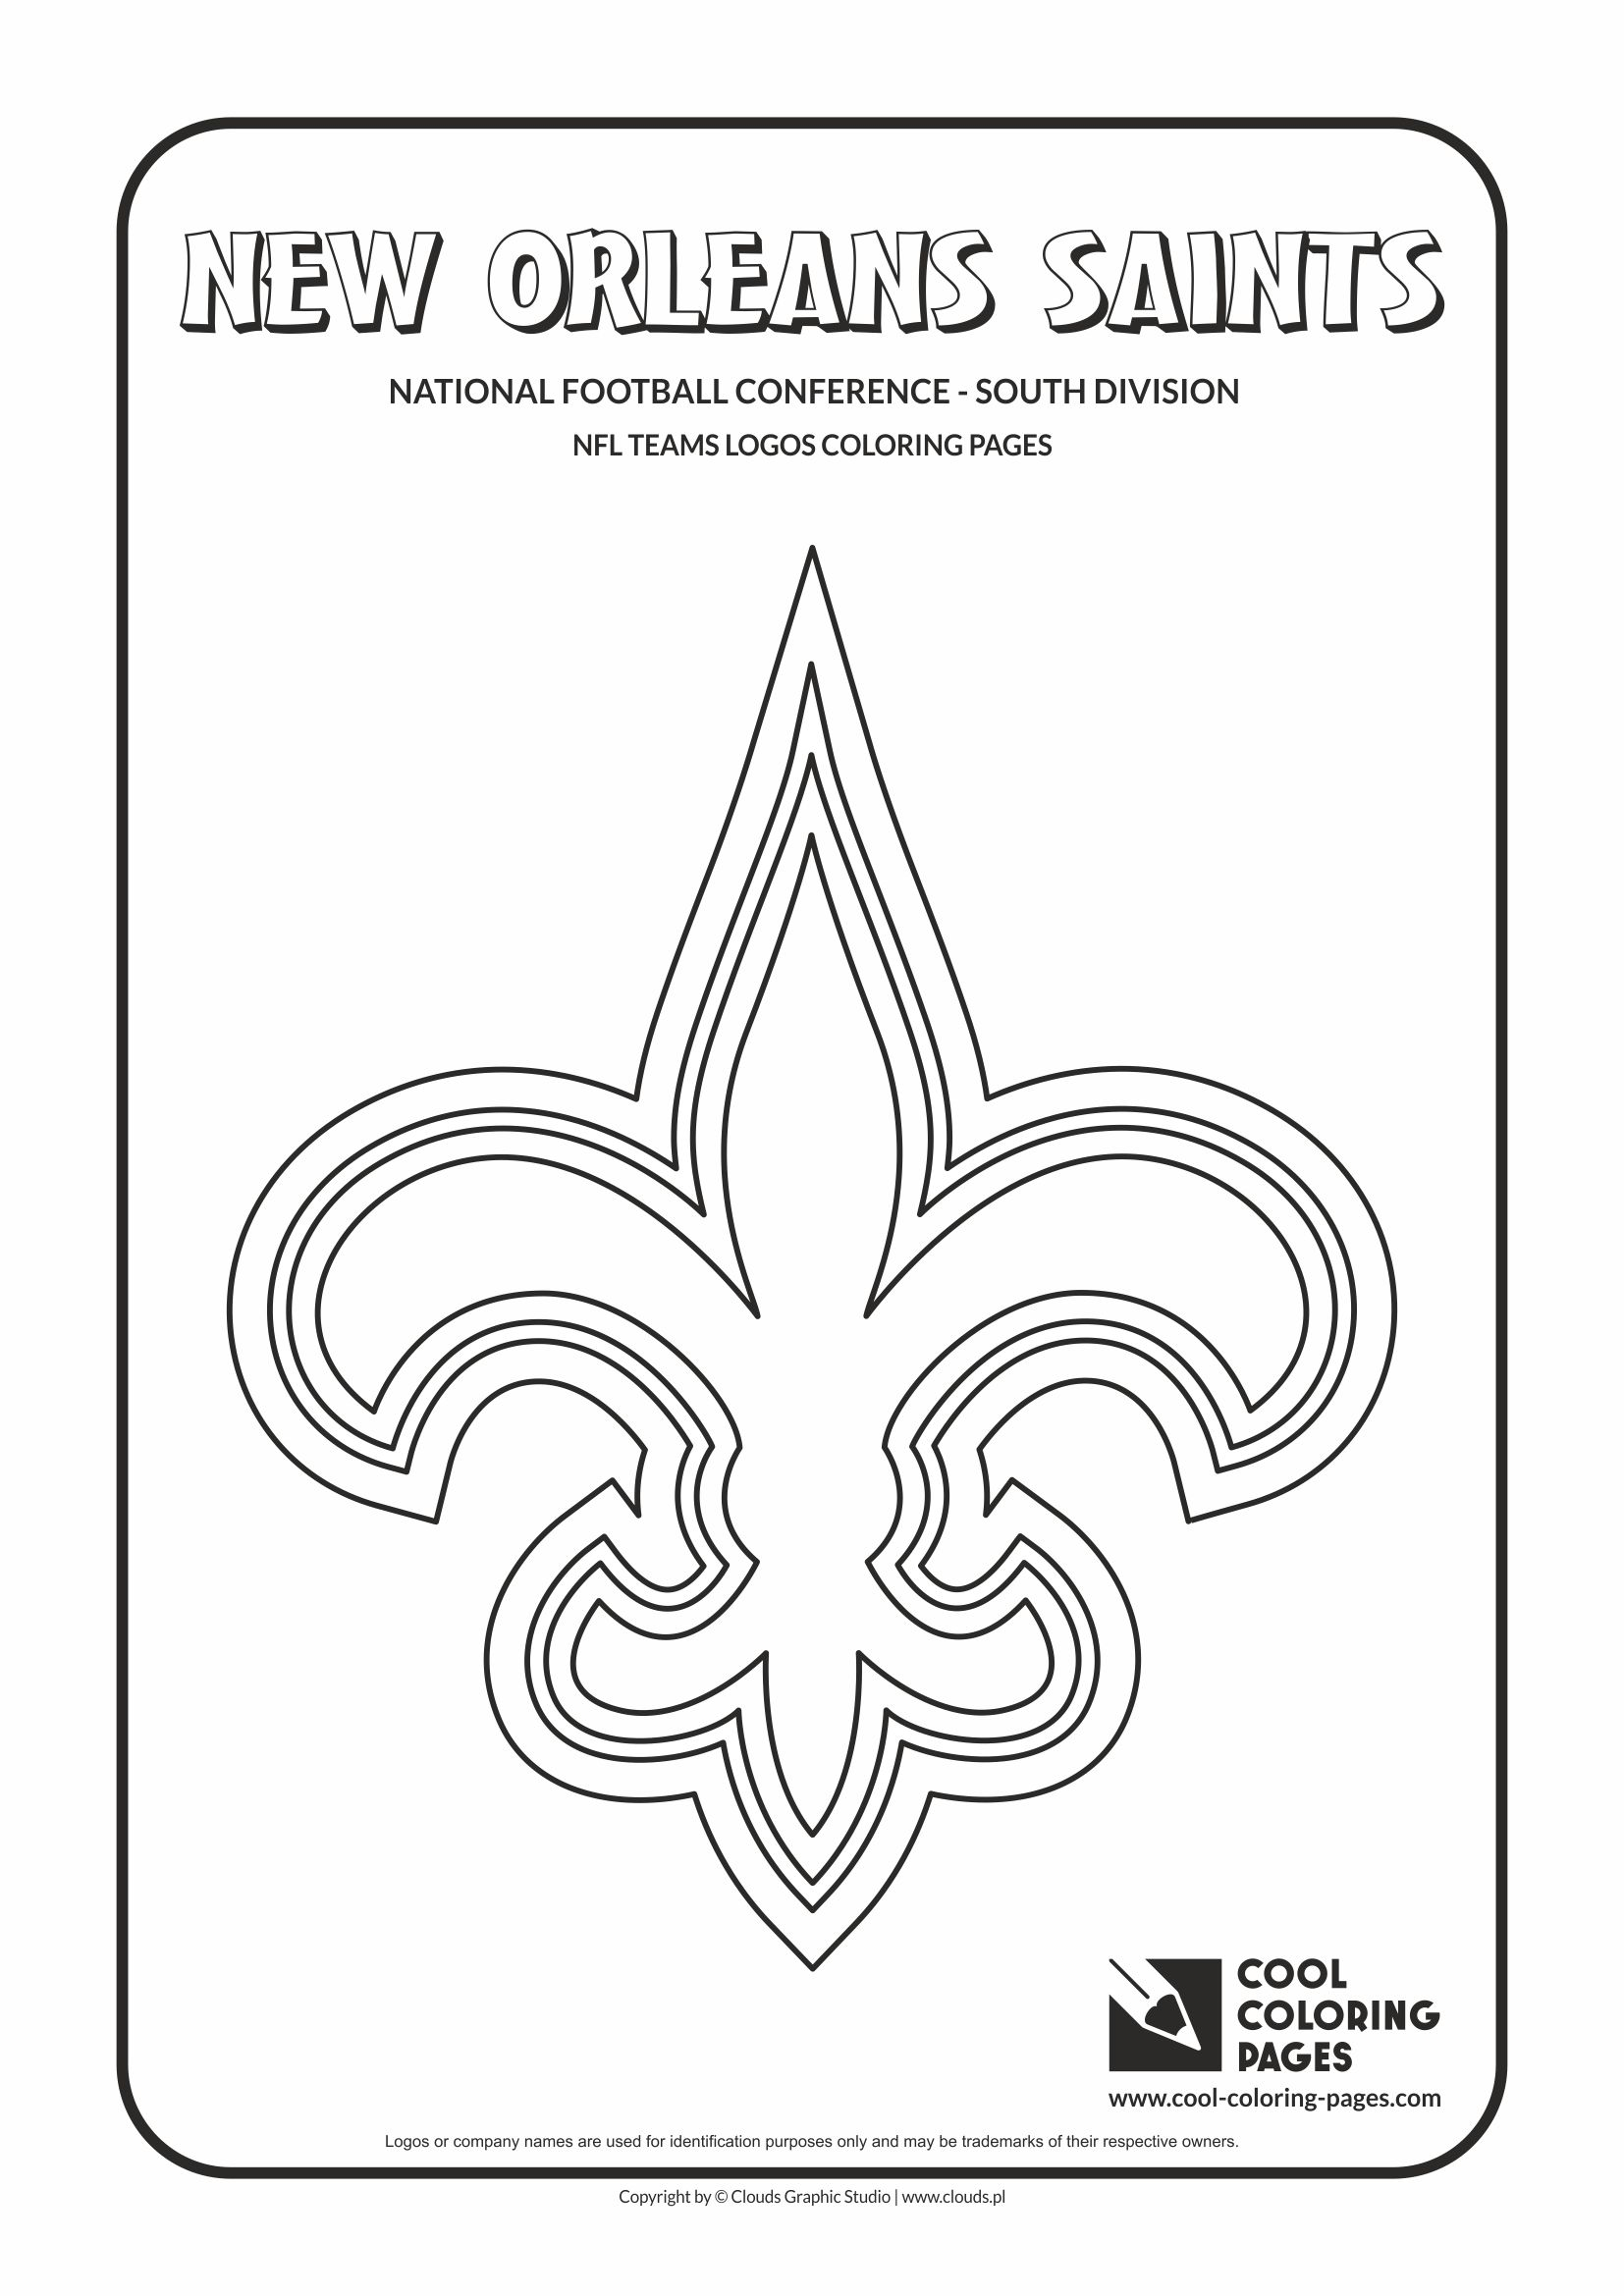 Nfl Teams Logos Coloring Pages Cool Coloring Pages Ny Giants Coloring Pages